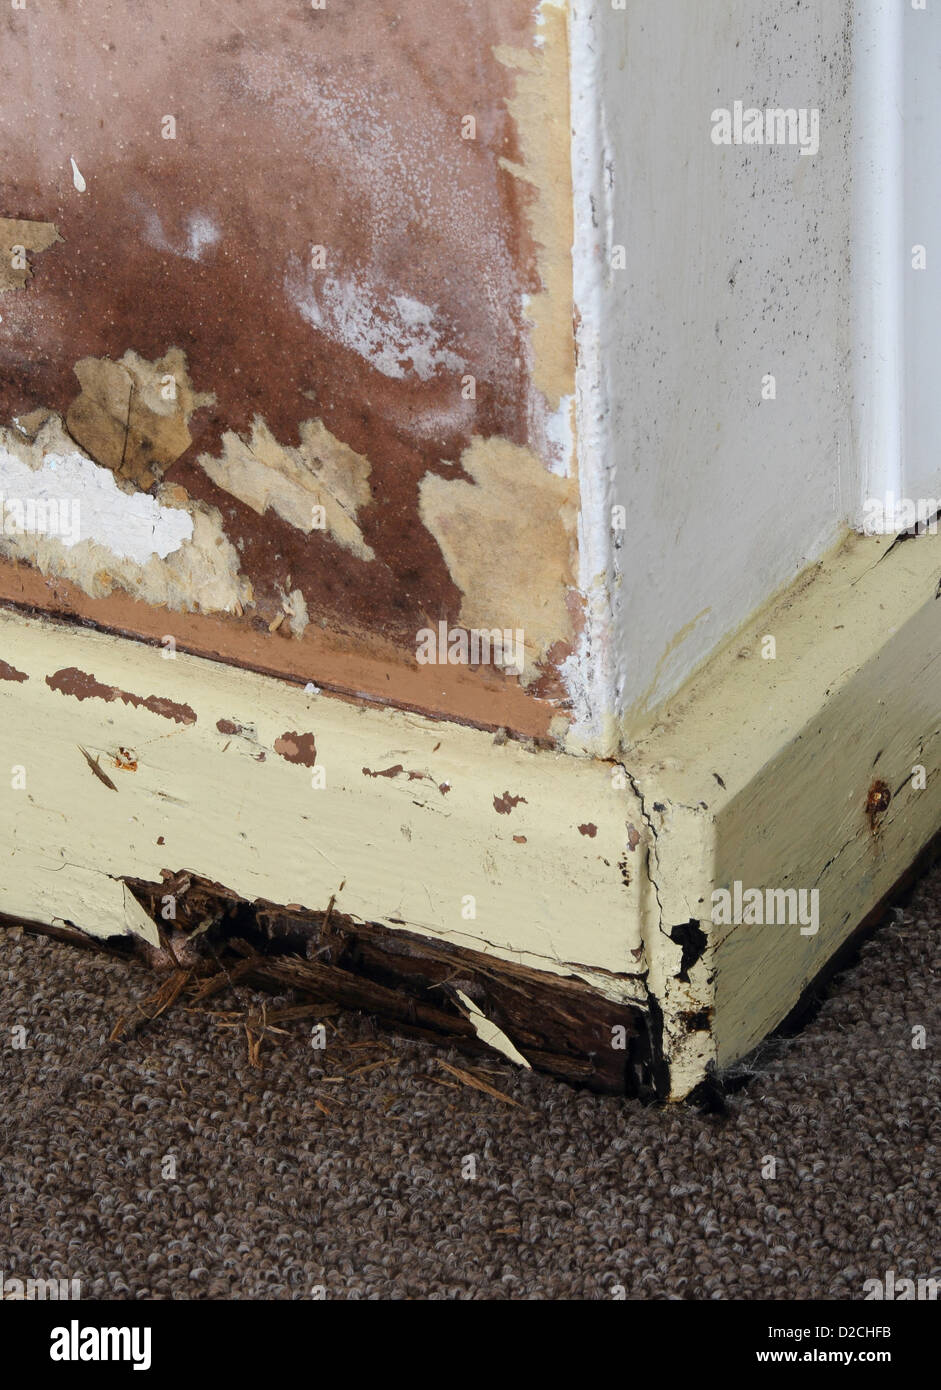 Rising Damp on an Internal Wall of a House with Rotten Skirting Board, UK PROPERTY RELEASED - Stock Image